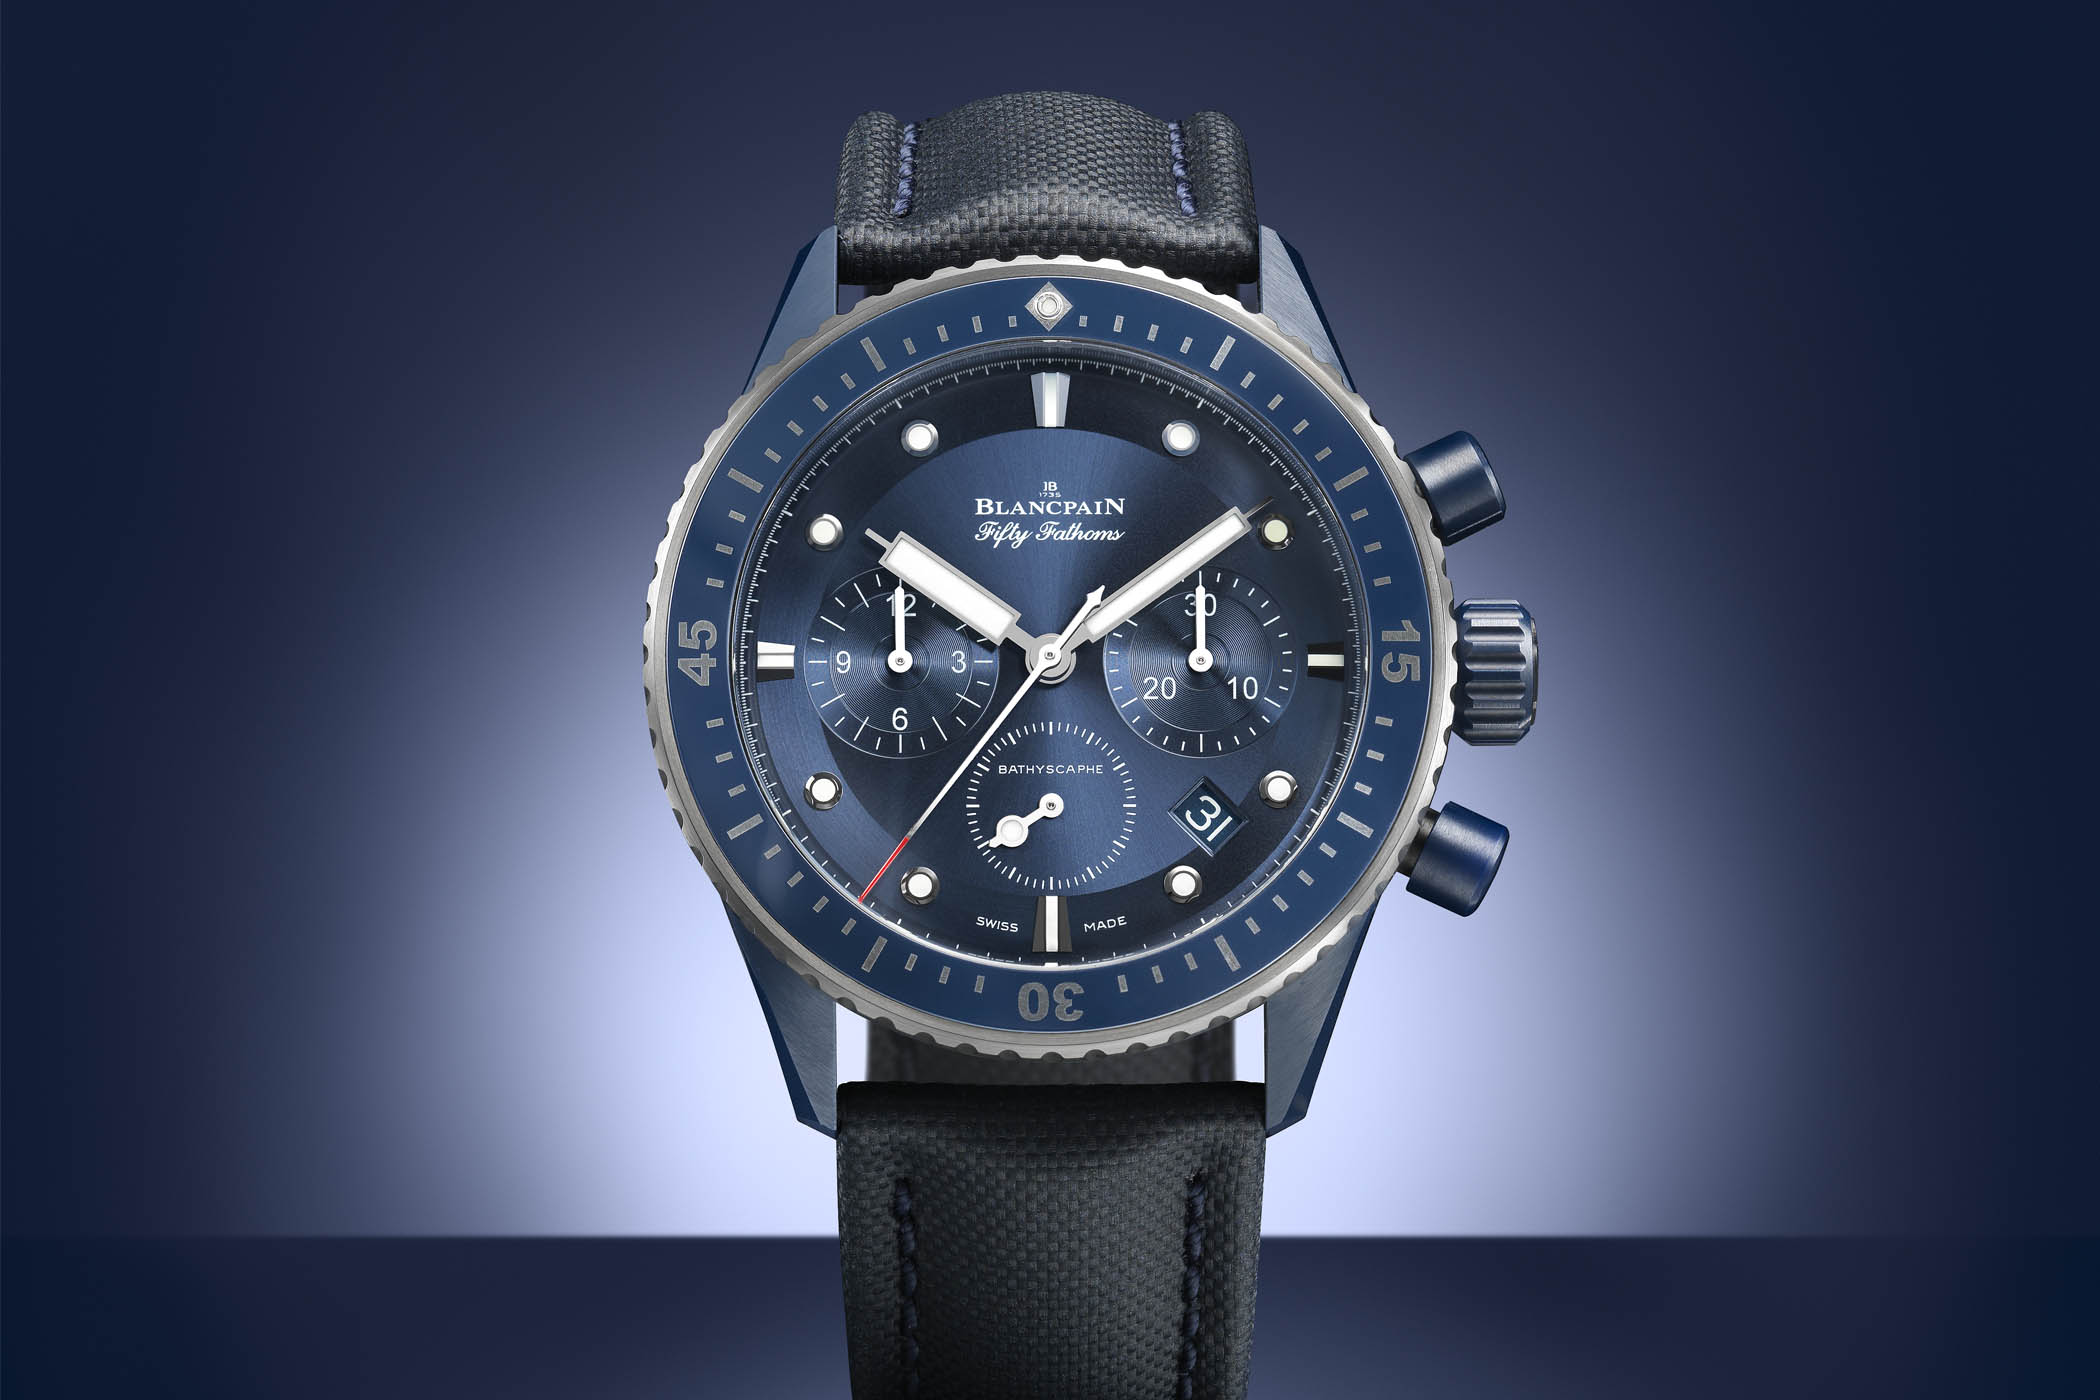 Blancpain Fifty Fathoms Bathyscaphe Bucherer Blue Edition